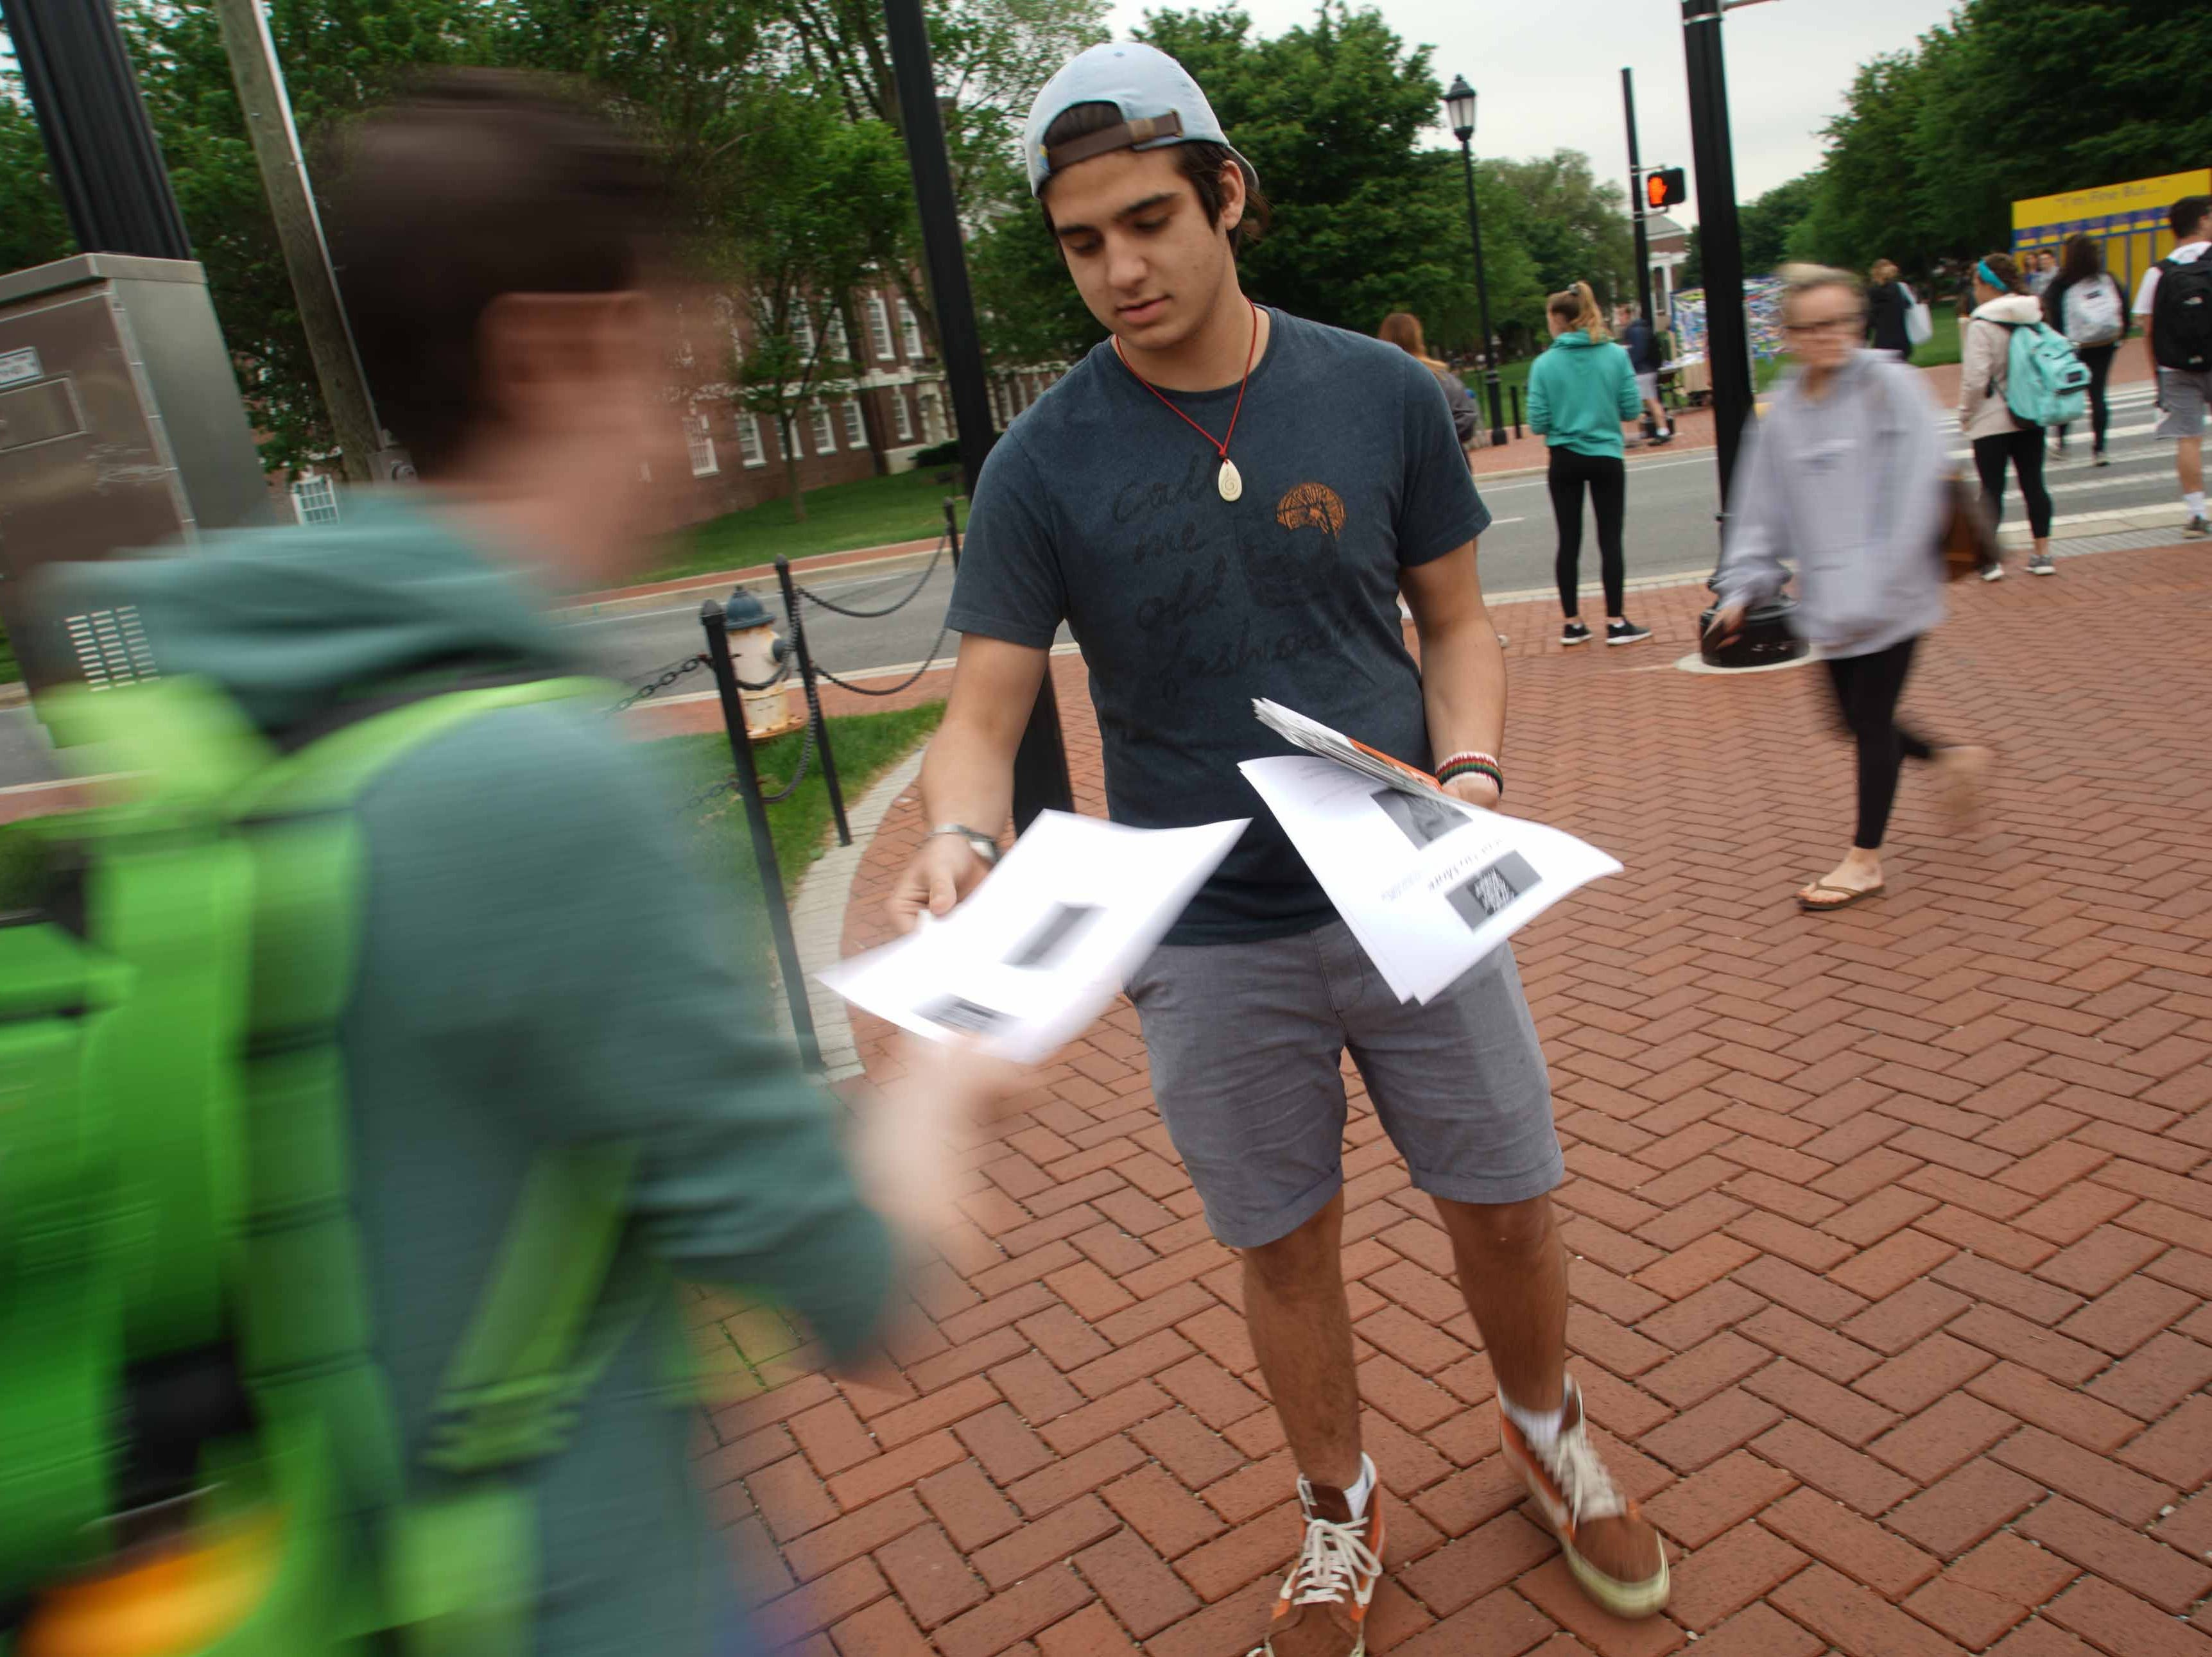 Jeremy Reissman, 18, a freshman, hands out information on what to do if you've sexually assaulted during a silent protest on the university's Green Wednesday afternoon.